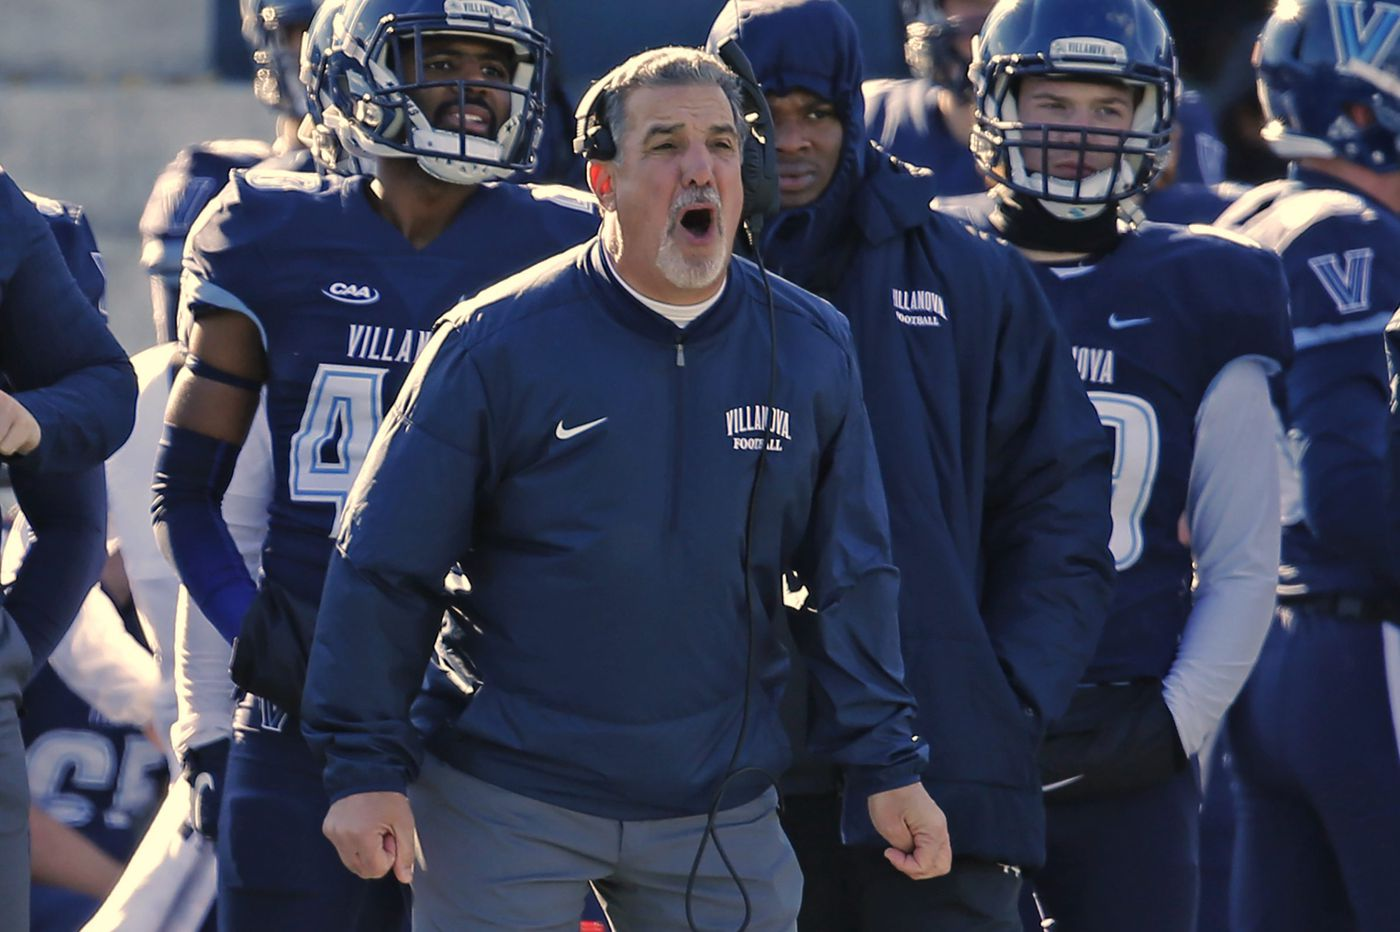 Villanova football team looking for deja vu in Battle of the Blue